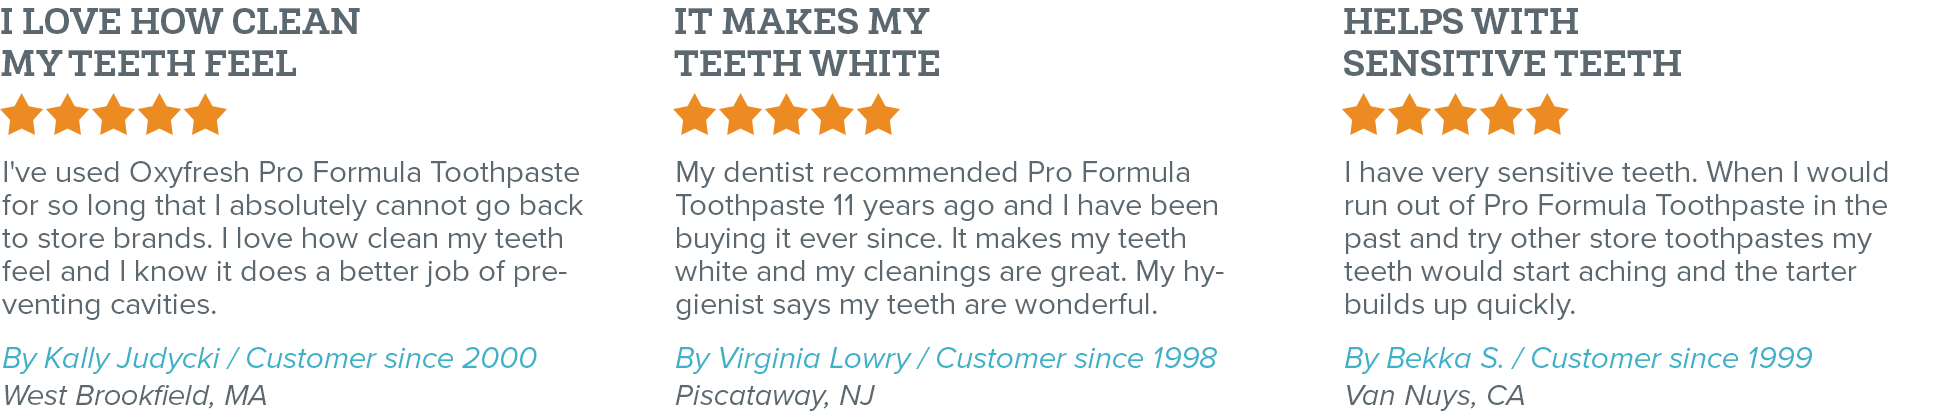 Oxyfresh - Eliminate Bad Breath with Pro Formula Cosmetic Prophy Safe Toothpaste Reviews